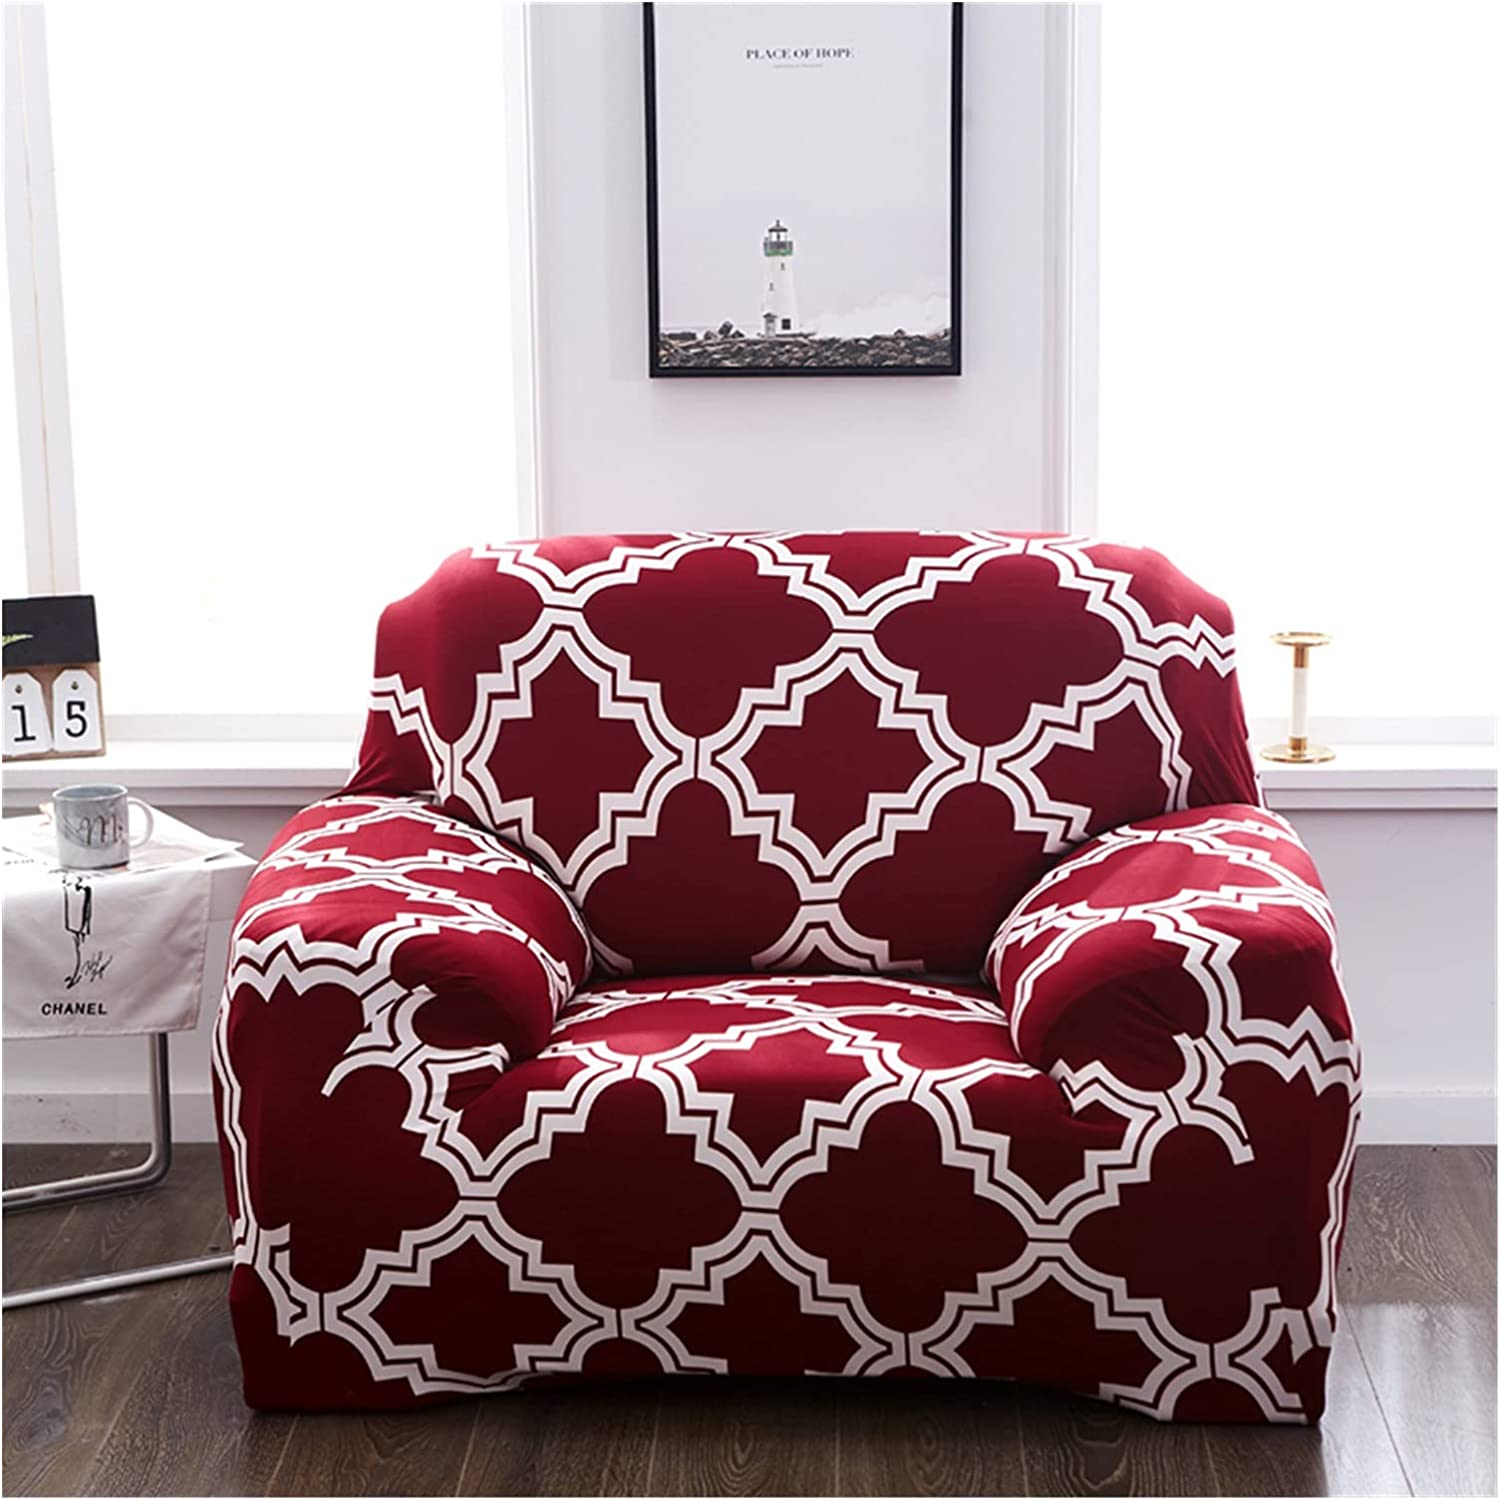 XUELINGTANG Single Sofa Chair Slipcovers Max 61% OFF Armchair Direct sale of manufacturer Ela Decoration